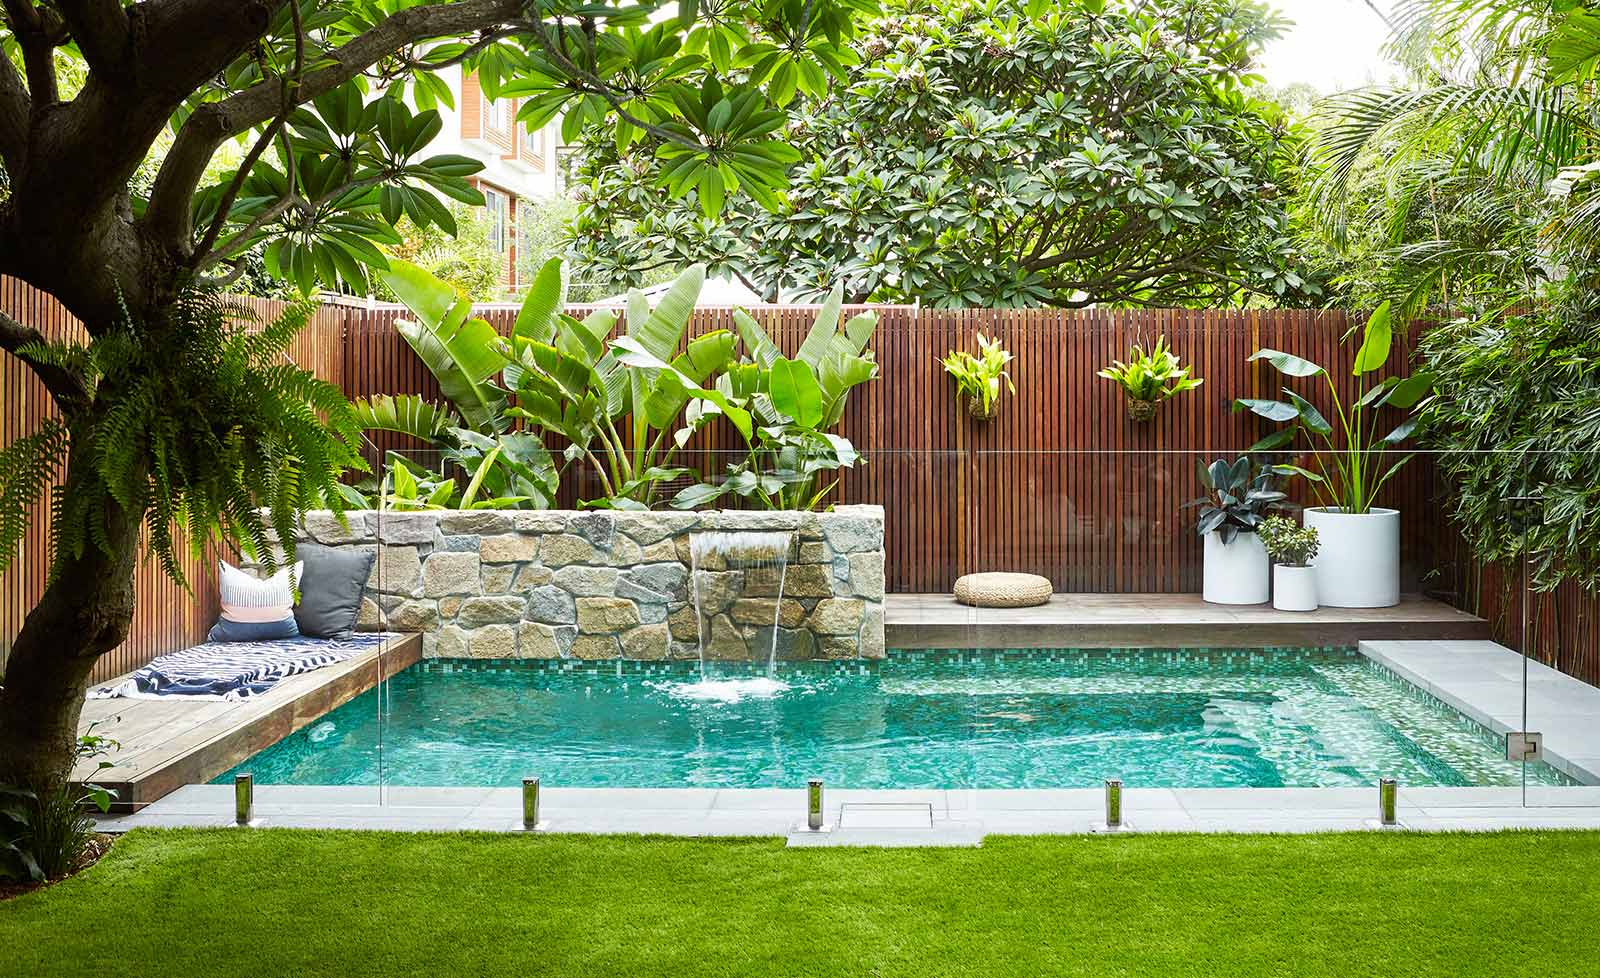 Modular Landscapers Sydney | Landscape Design Company - Harrison's for New Landscape Design Images